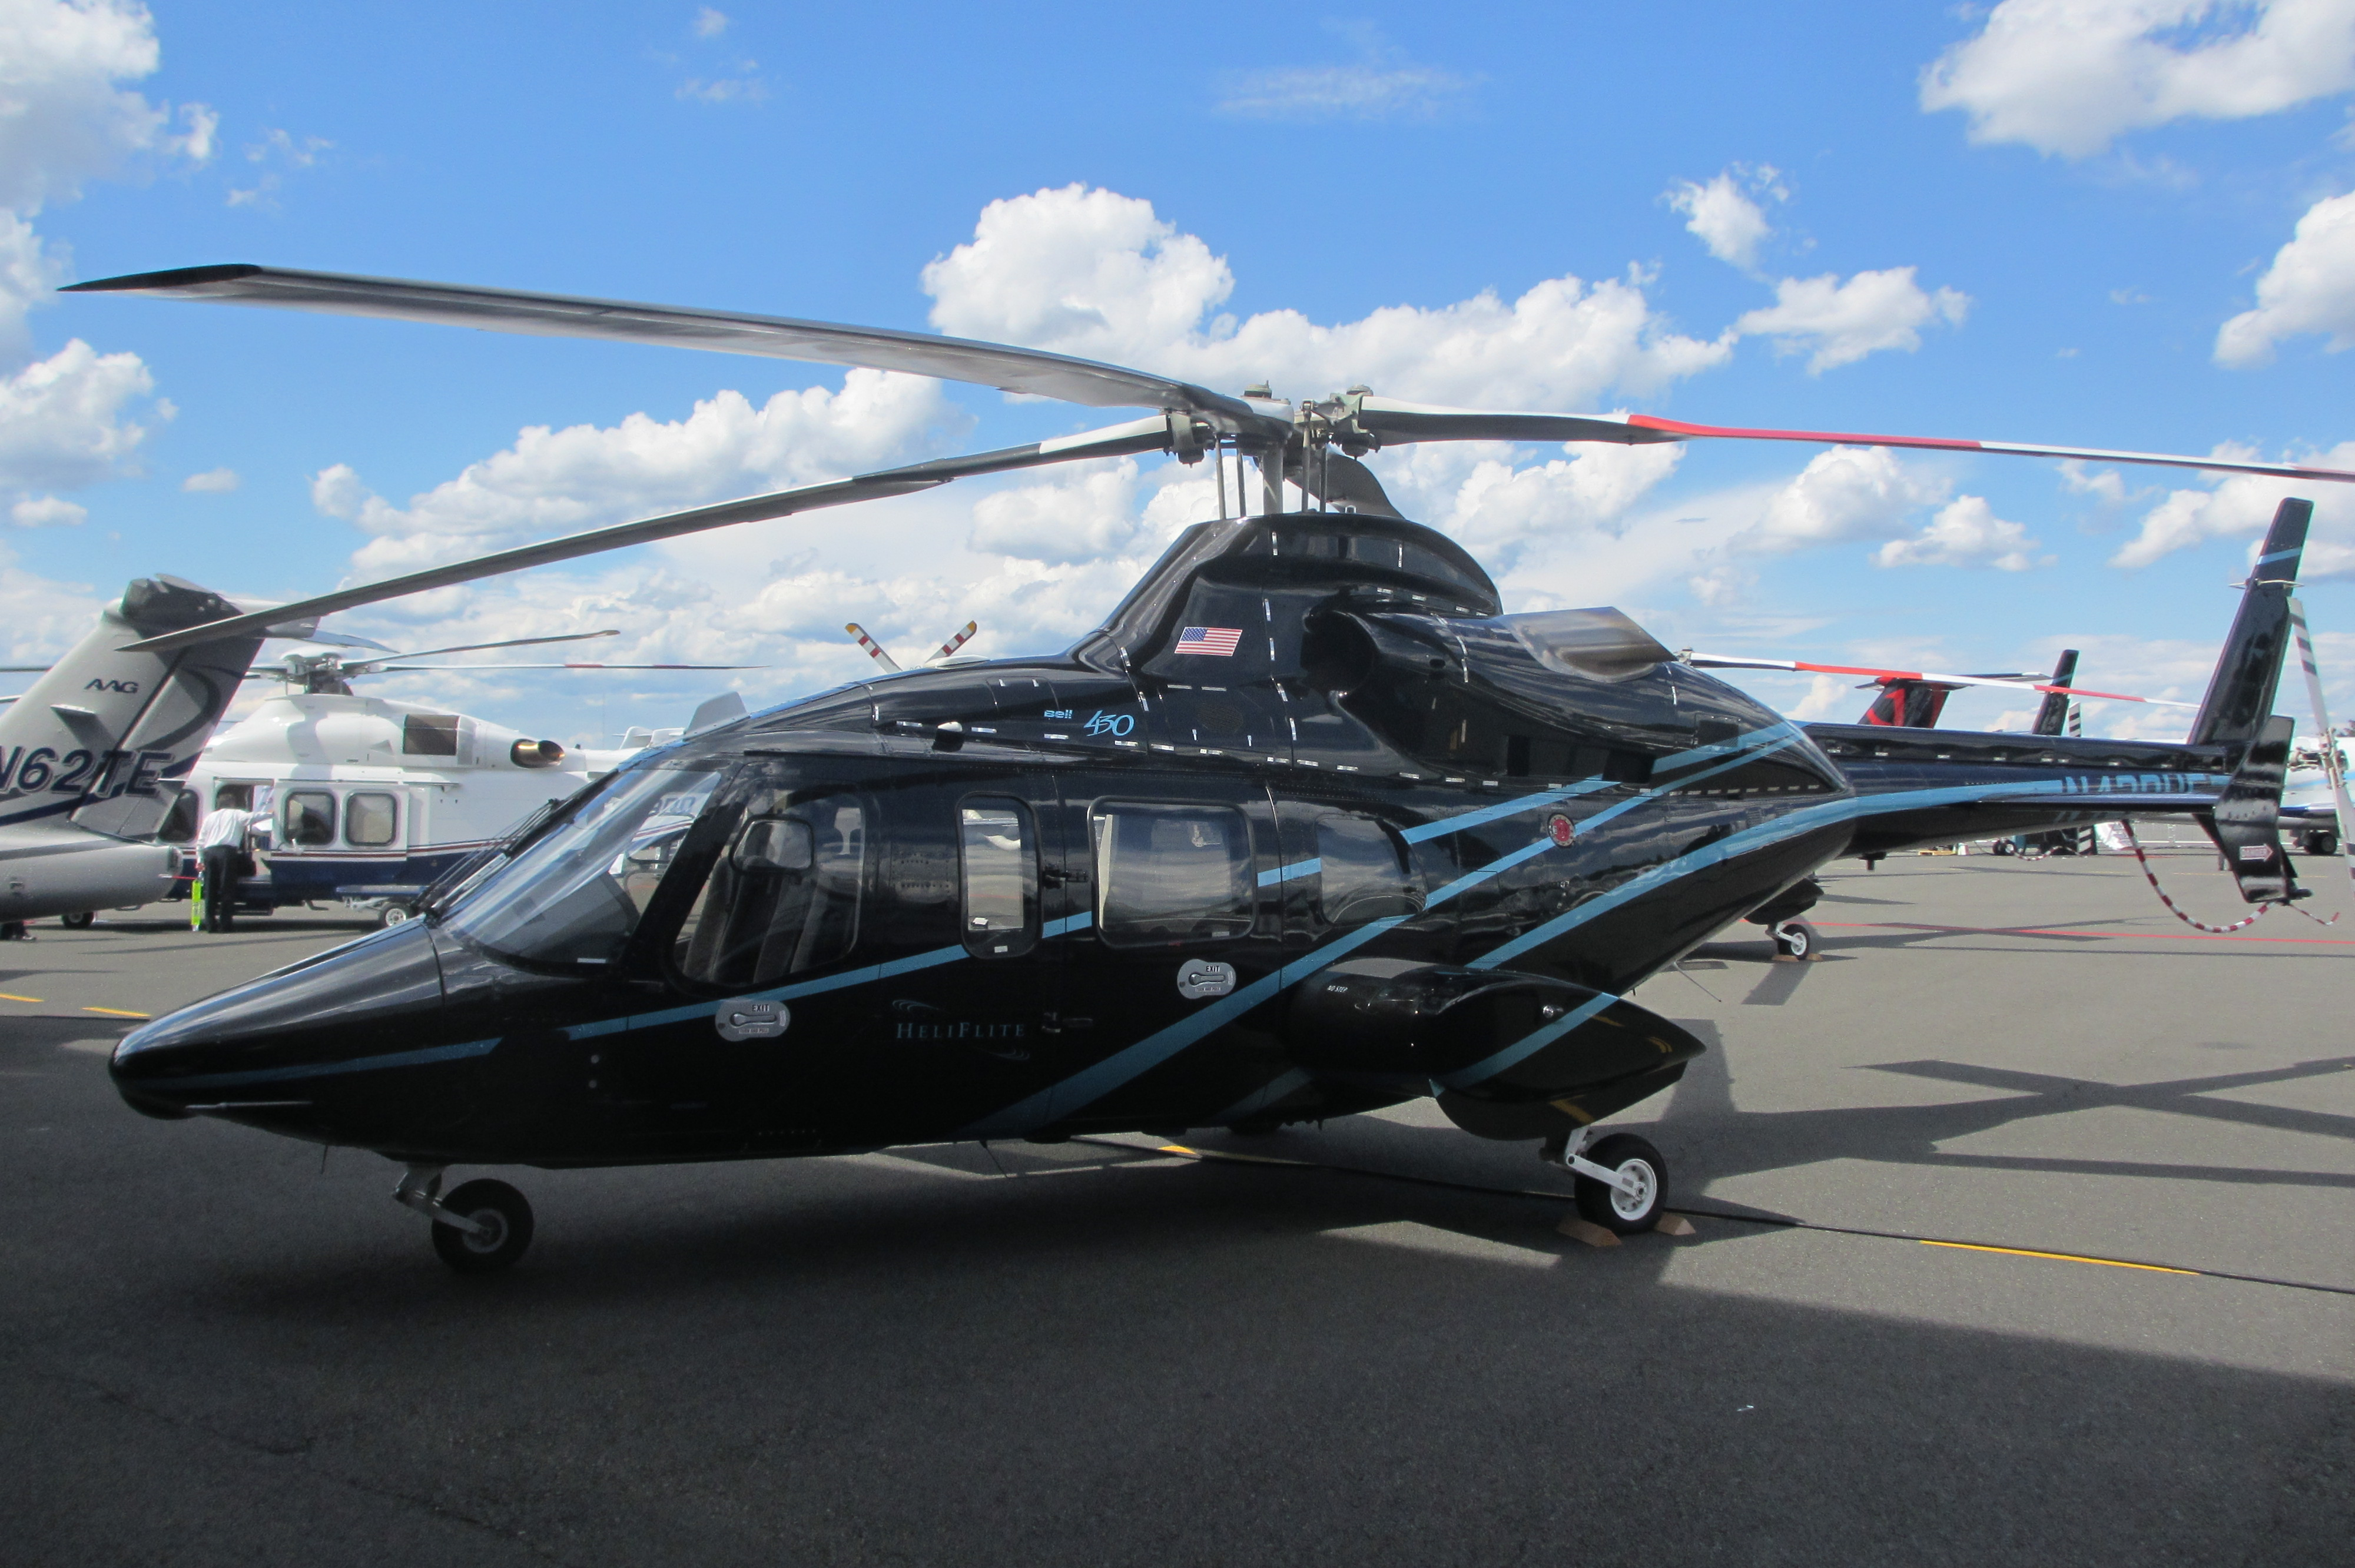 bell 430 helicopter with File Bell 430 Helicopter Exterior 2 on Pictures Of Luxury Helicopters furthermore Offshore Helicopter Crash Chevron Withholds Details as well 304724 Bell 412 407 Rotor Head besides Bell 430 Fuer Pht 3 Xl Marc furthermore 40hs rescue408.